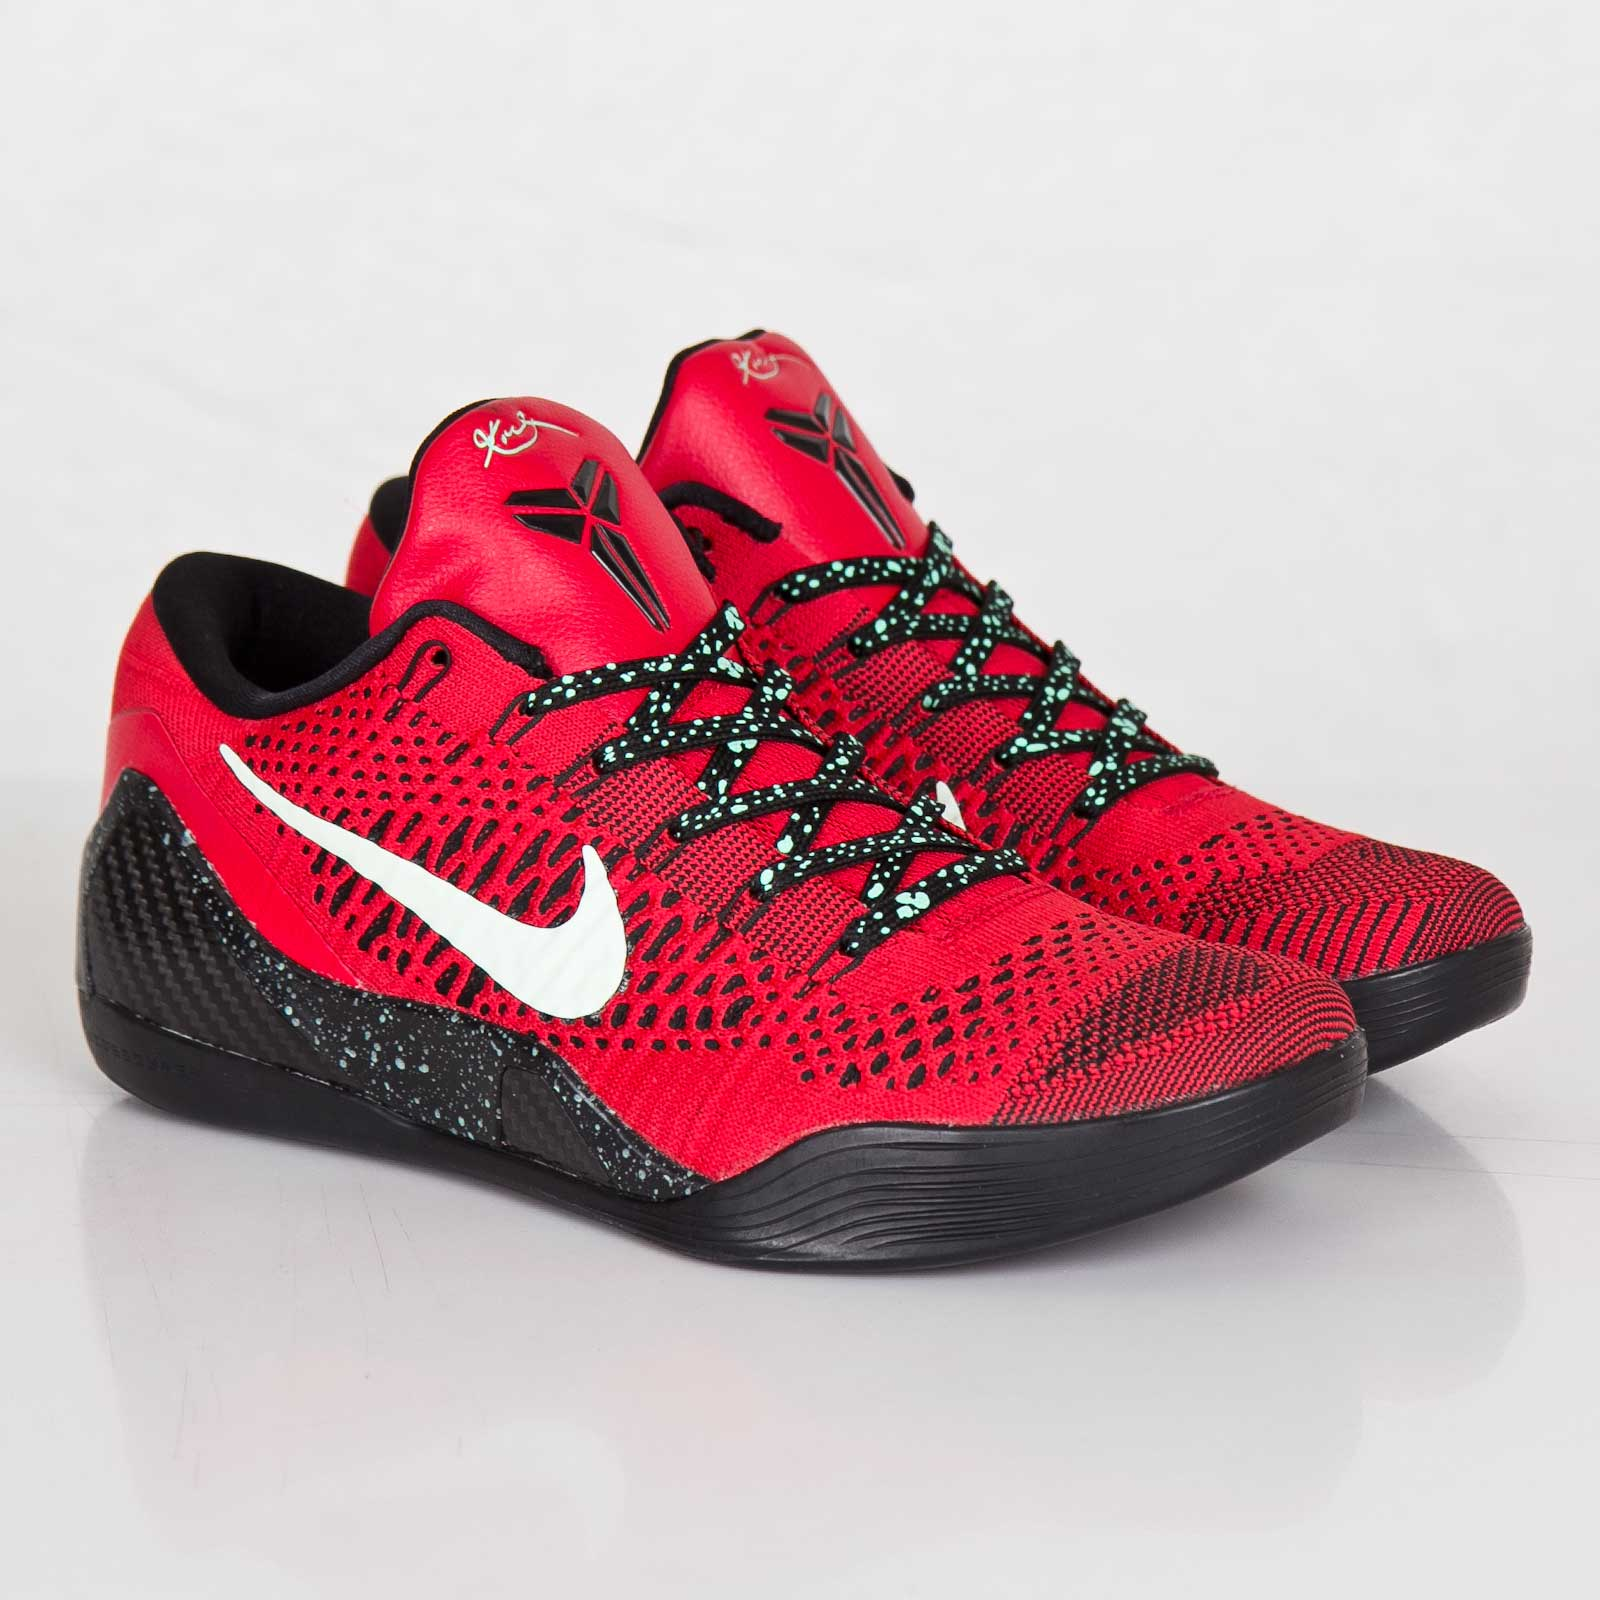 cheap for discount 12472 98fb9 Nike Kobe IX Elite Low - 639045-600 - Sneakersnstuff ...